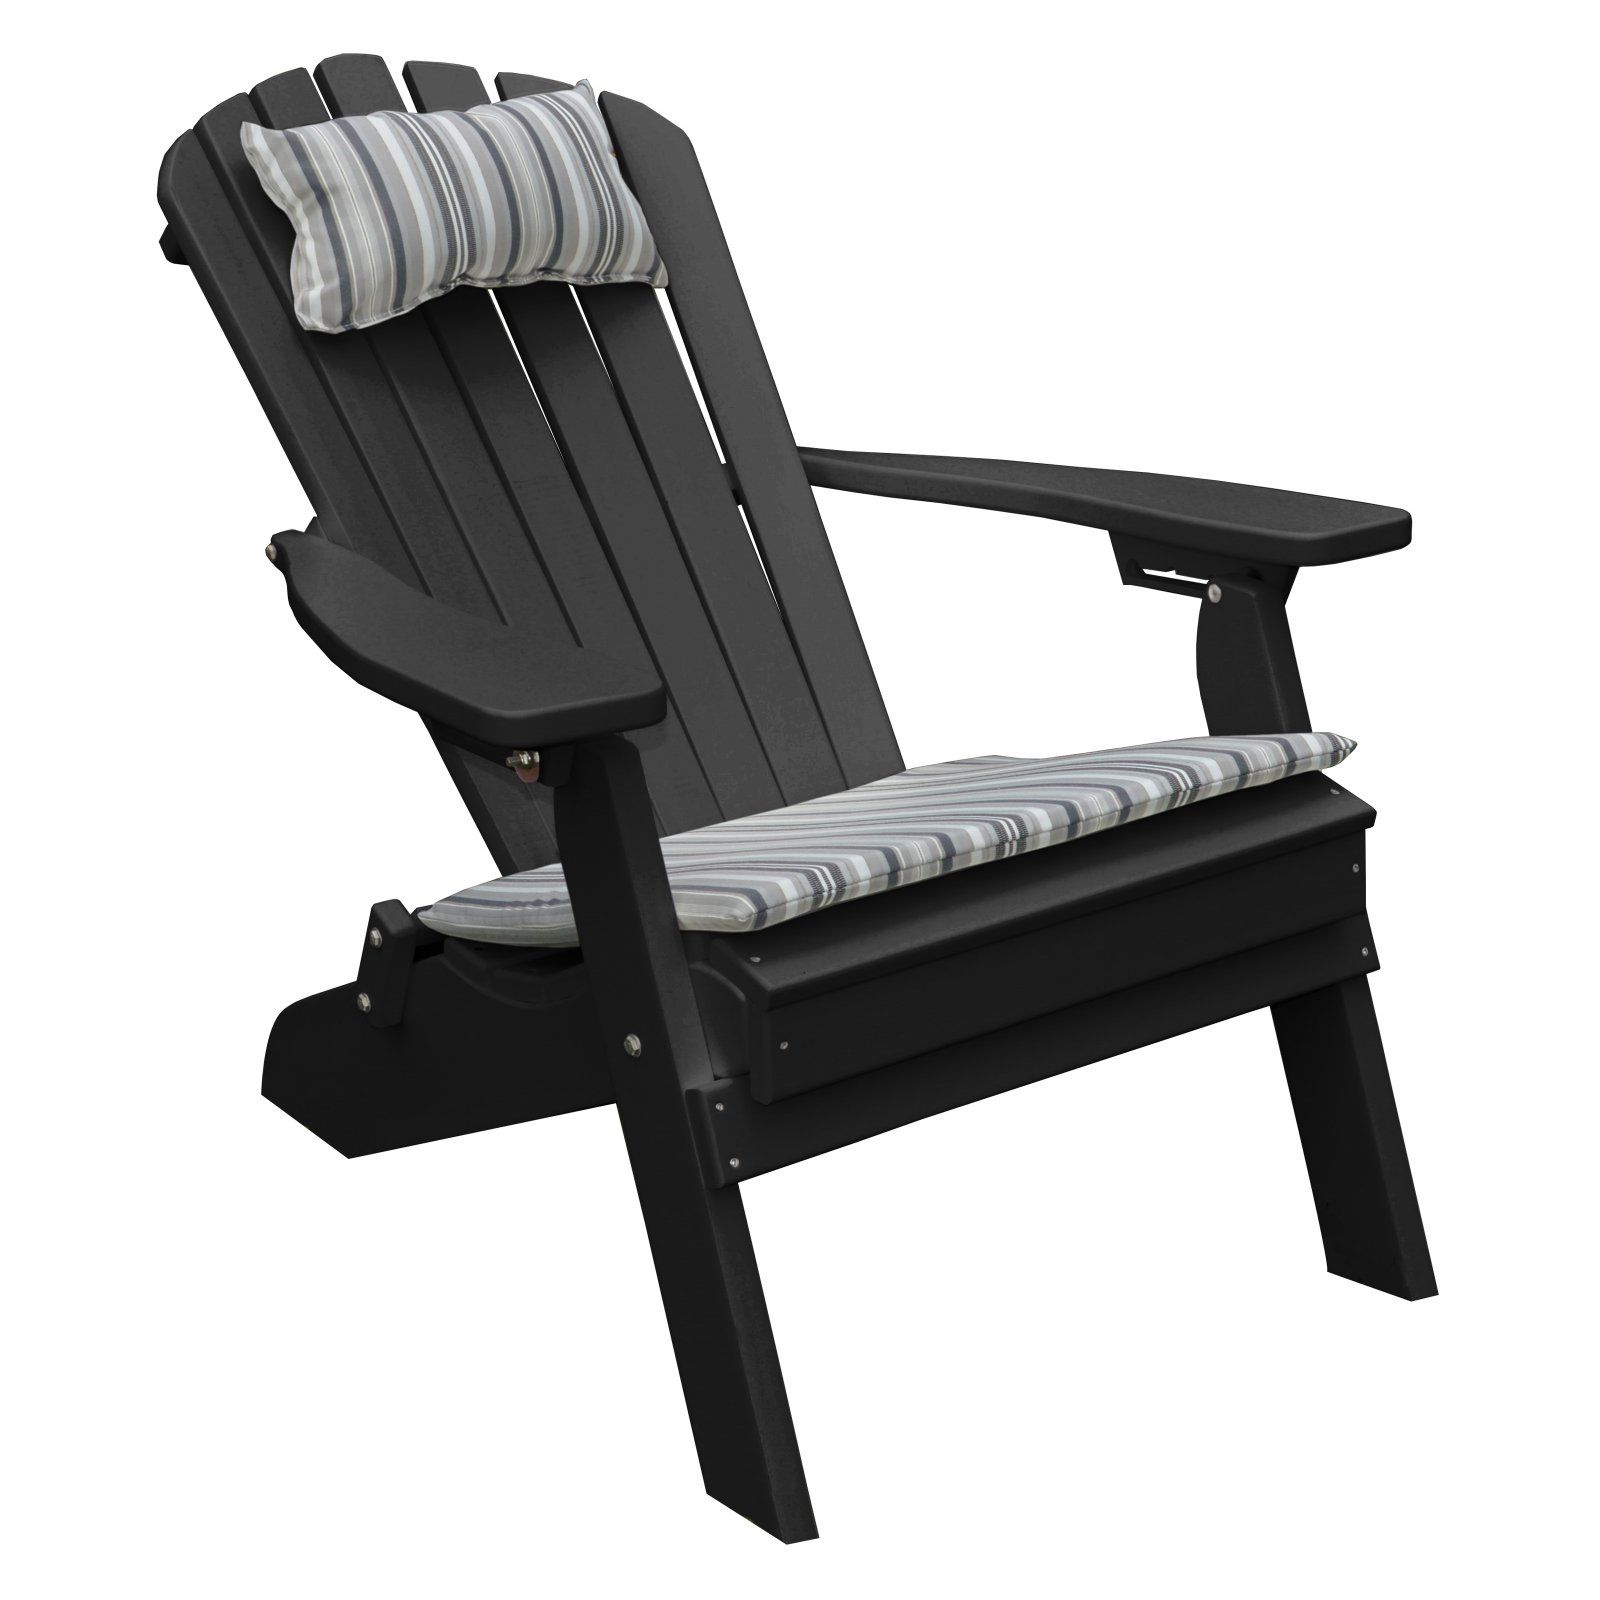 Miraculous Outdoor Radionic Hi Tech Bayside Recycled Plastic Adirondack Andrewgaddart Wooden Chair Designs For Living Room Andrewgaddartcom